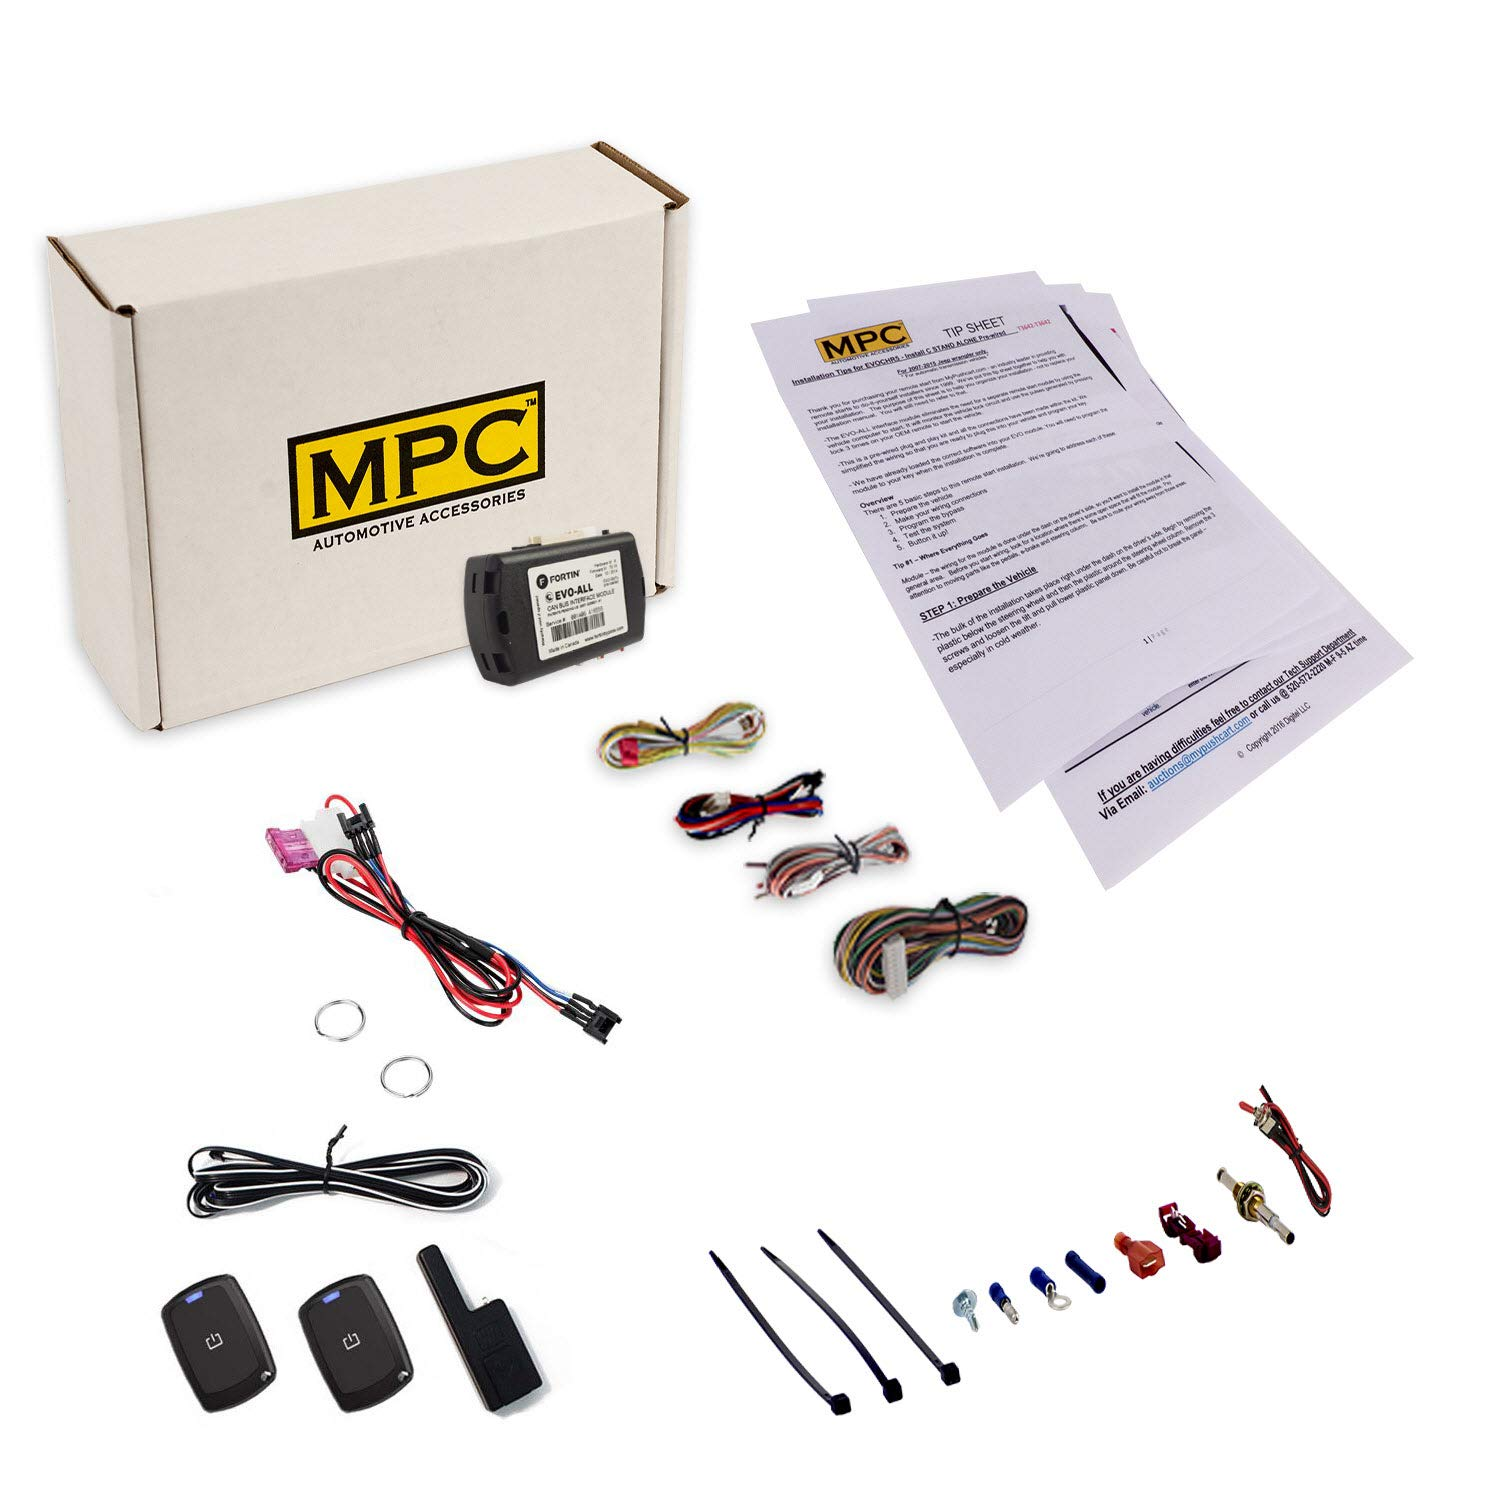 MPC Complete 1-Button Remote Start Kit for 2009-2016 Toyota Venza - Push-to-Start - Gas - T-Harness - Firmware Preloaded